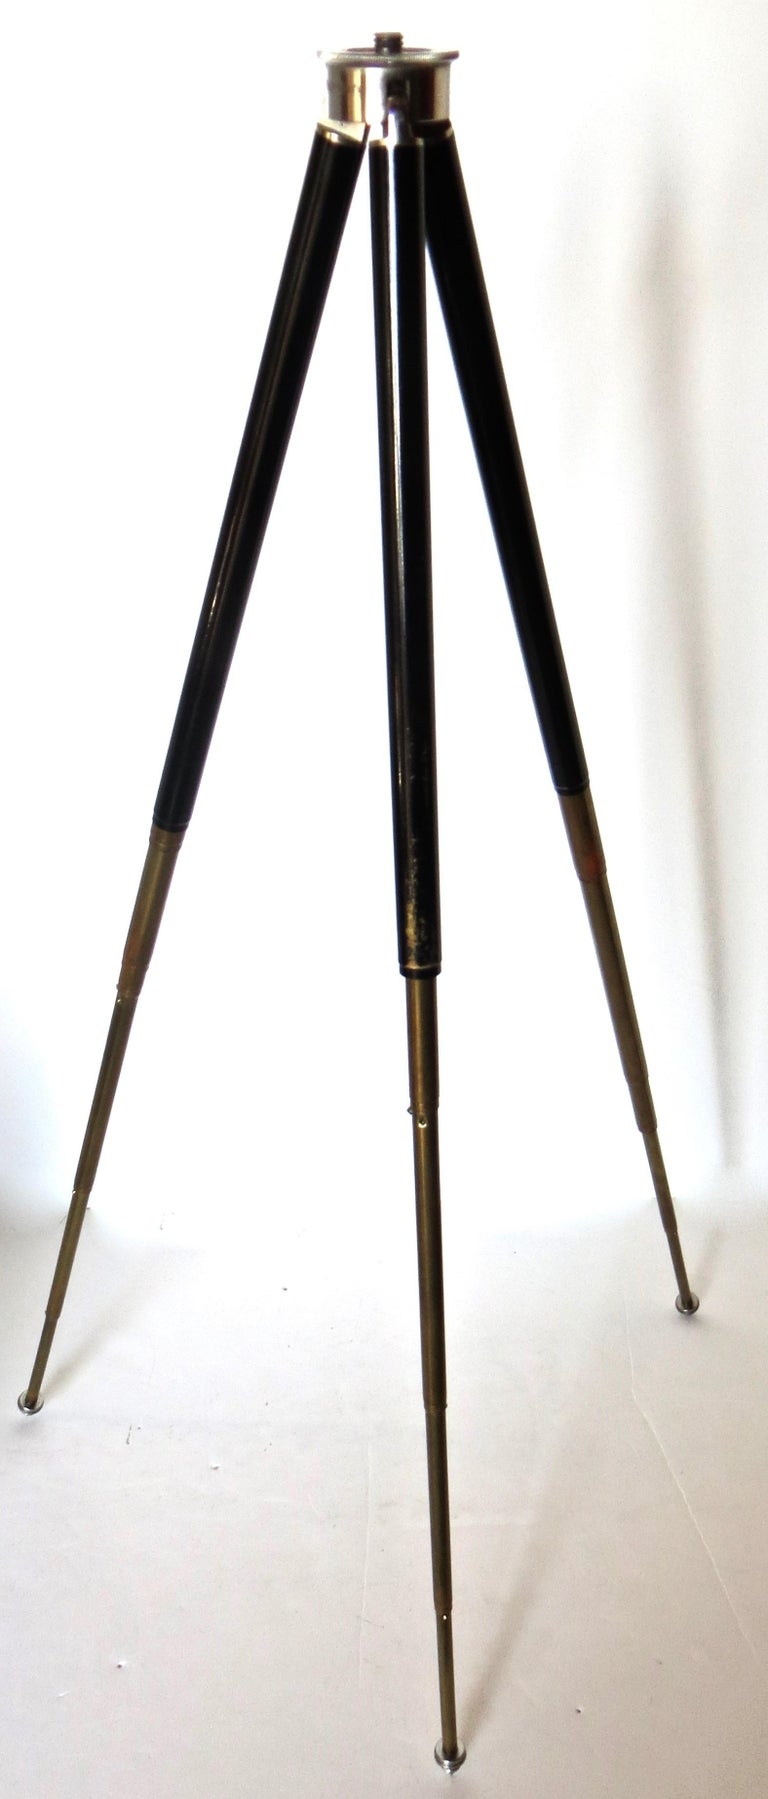 Early 20th Century Vintage Miniature German Variable Camera Tripod 1920s with Ansel Adams Book For Sale